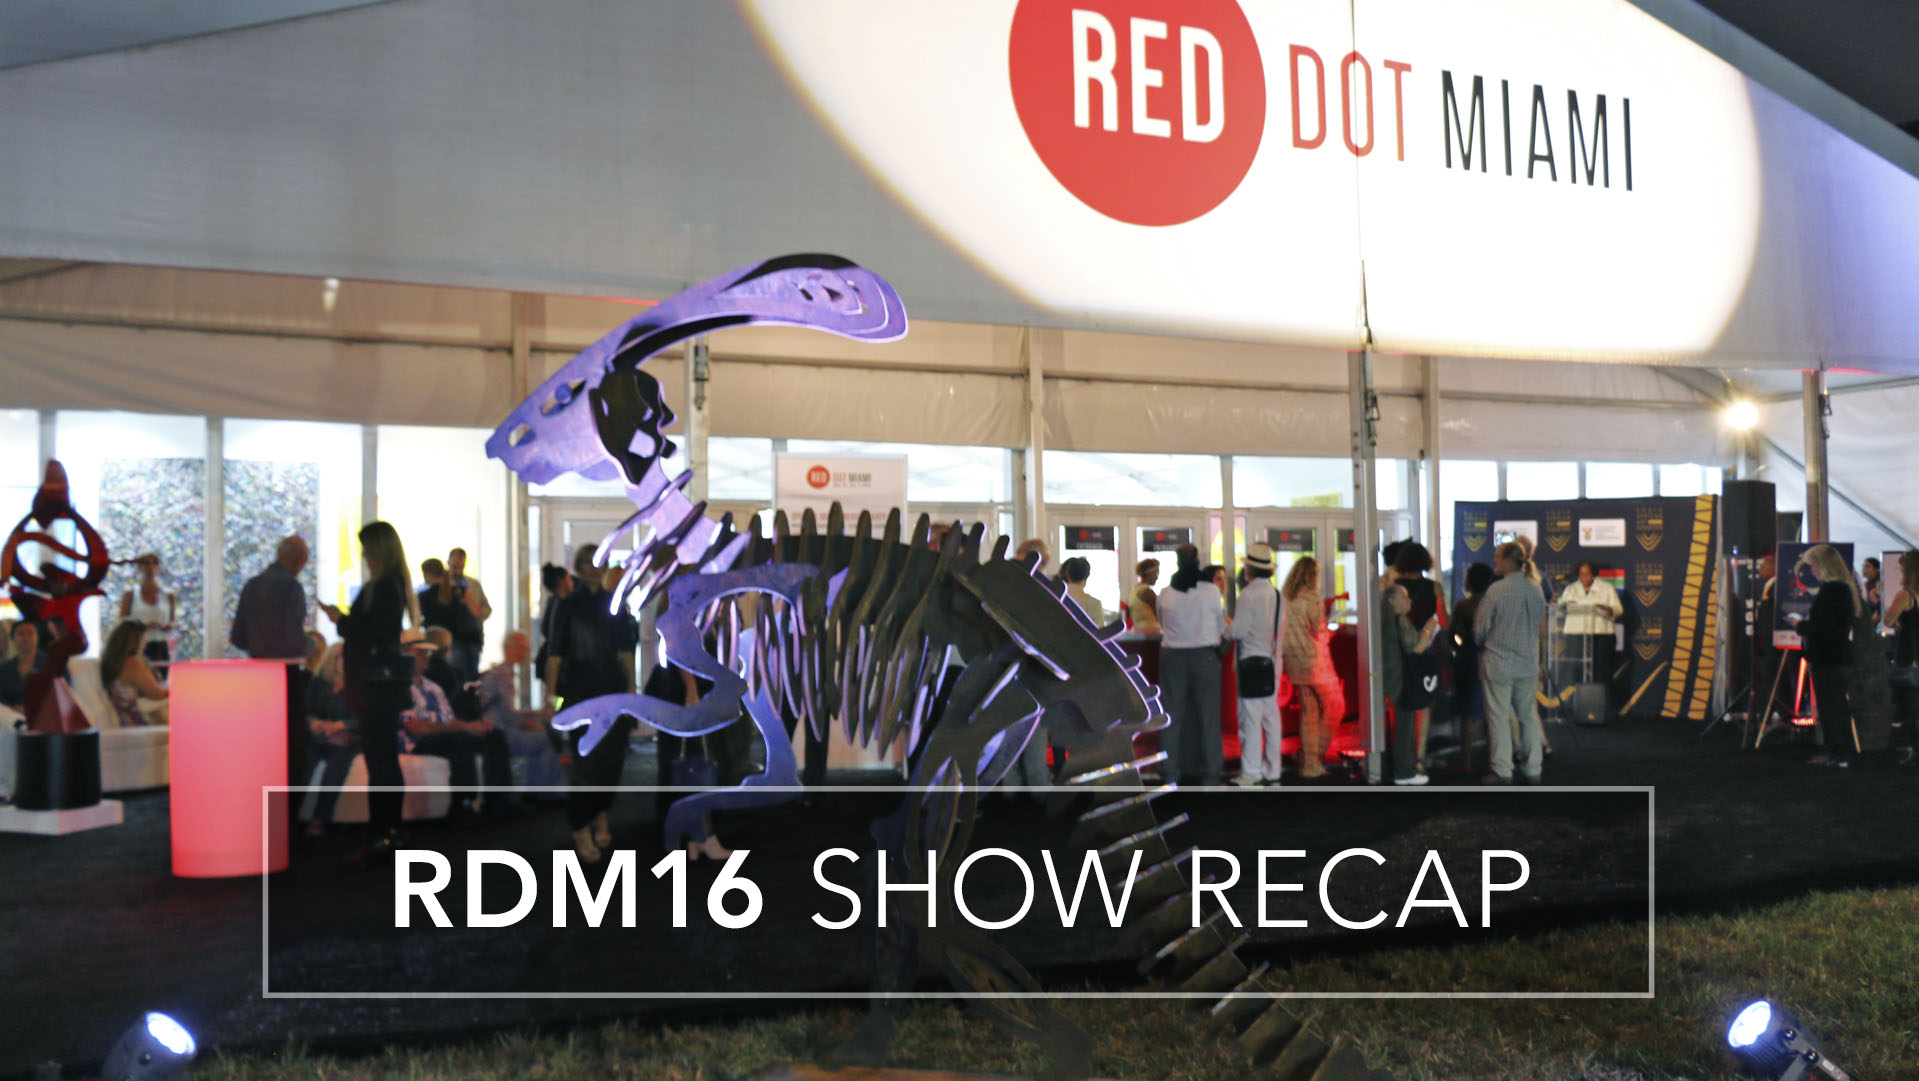 Red Dot Miami 2016 Show Recap